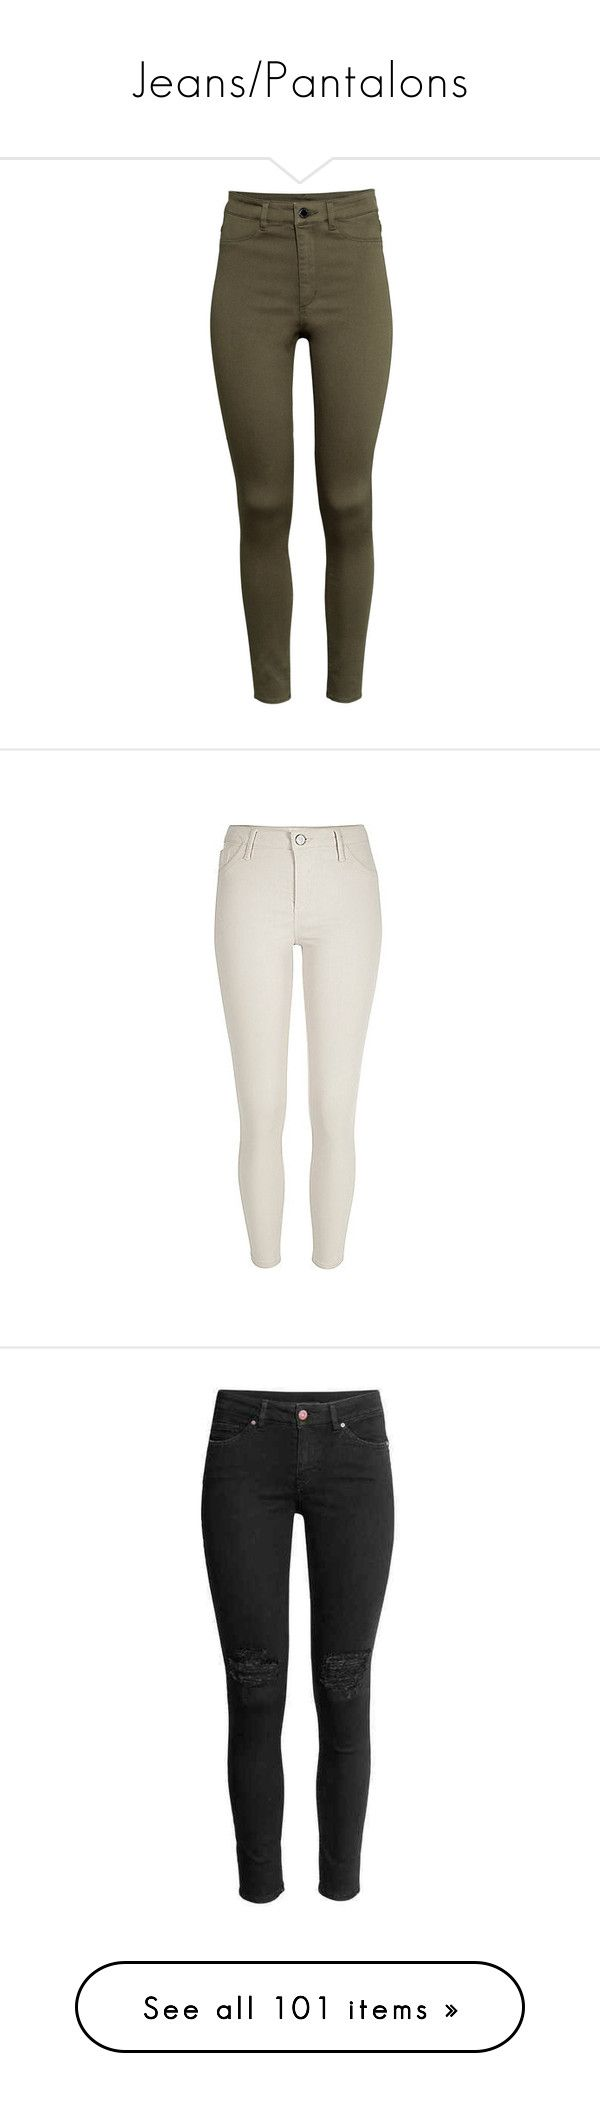 """Jeans/Pantalons"" by boiteasecrets ❤ liked on Polyvore featuring pants, jeans, bottoms, trousers, pantalones, khaki green, highwaisted pants, high rise pants, brown khaki pants and green khaki pants"